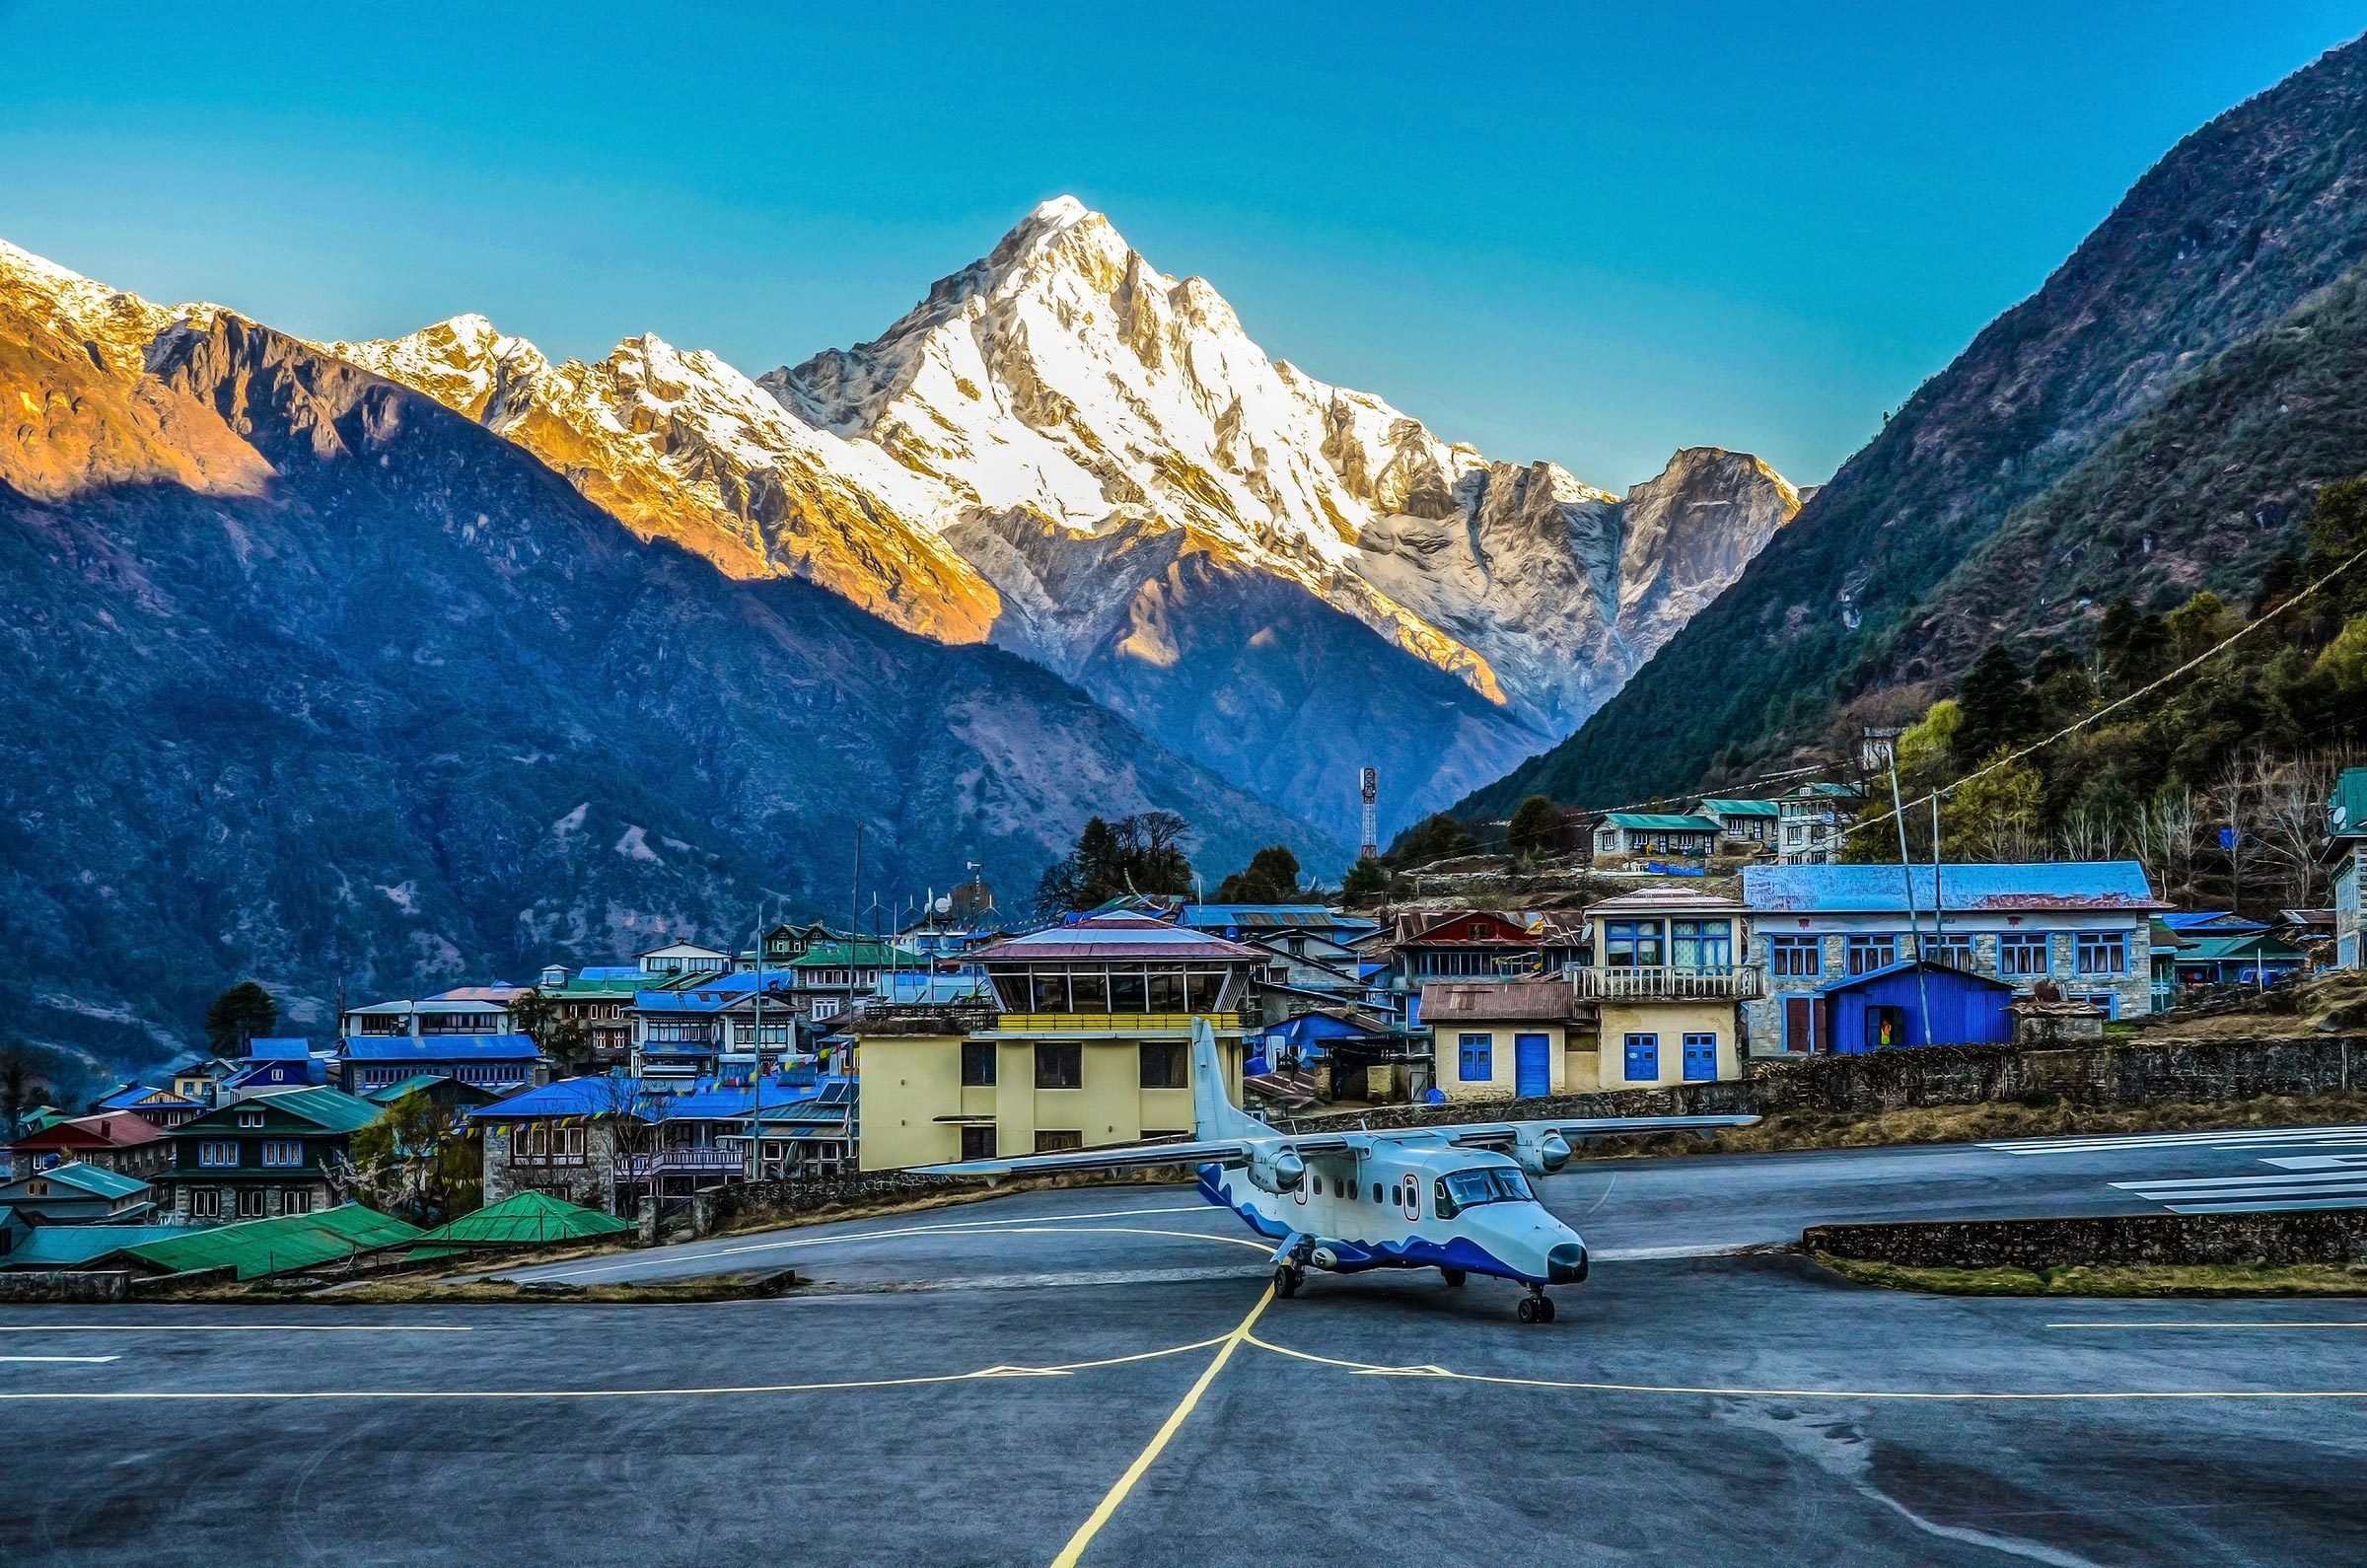 Airport in Lukla with plane and mountains behind